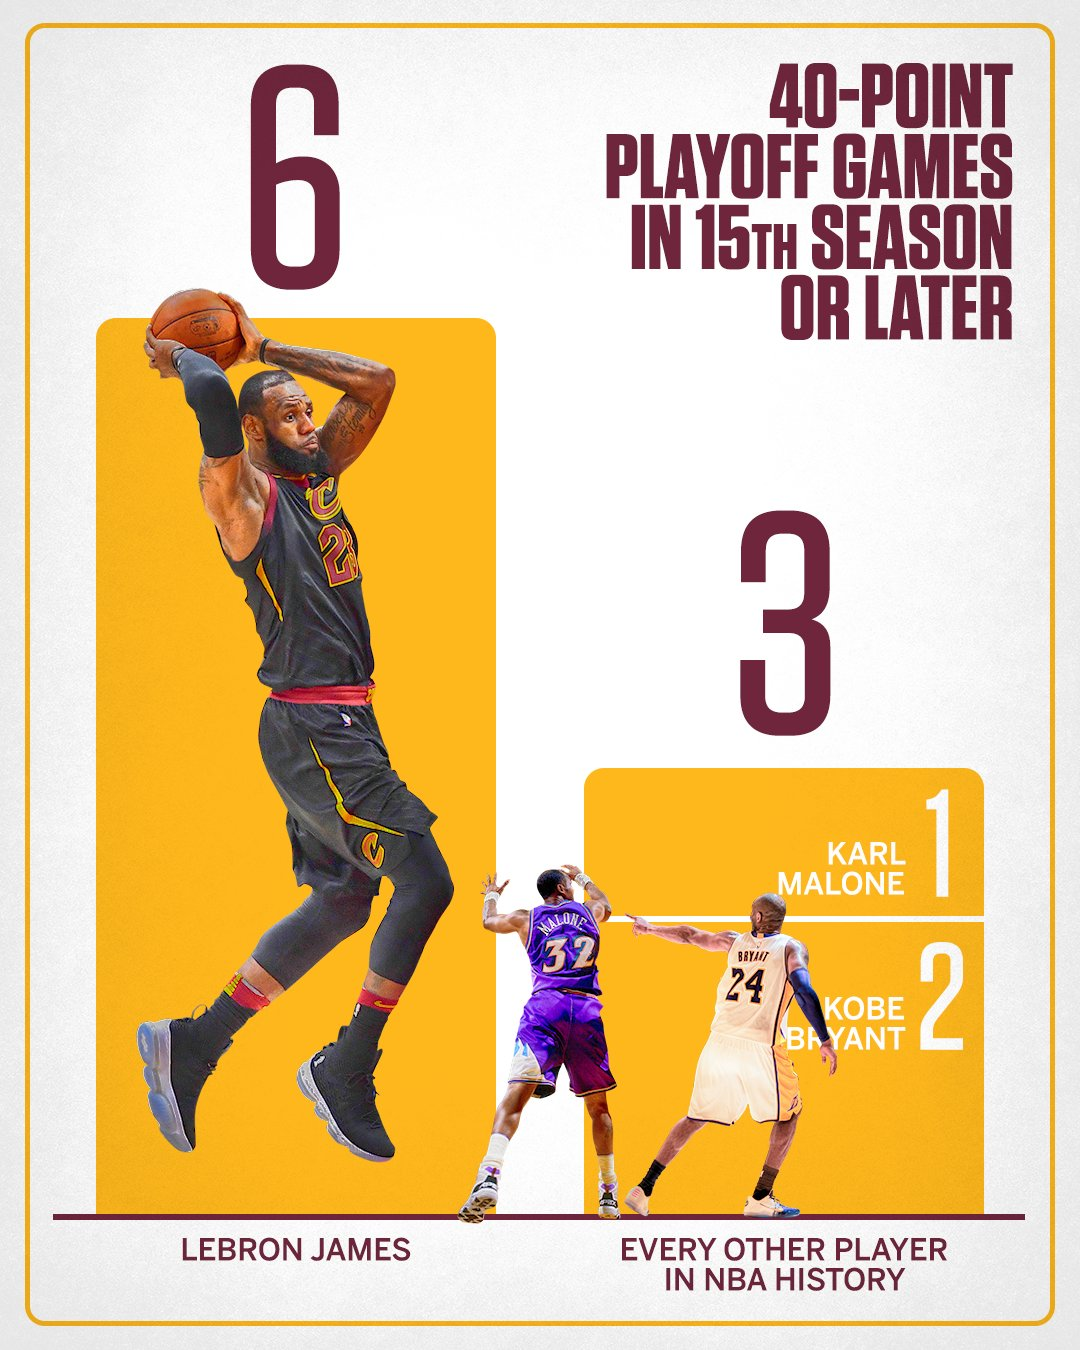 LeBron has TWICE as many 40-point games in his 15th season than every other player has COMBINED. https://t.co/mKGV4EyVJg